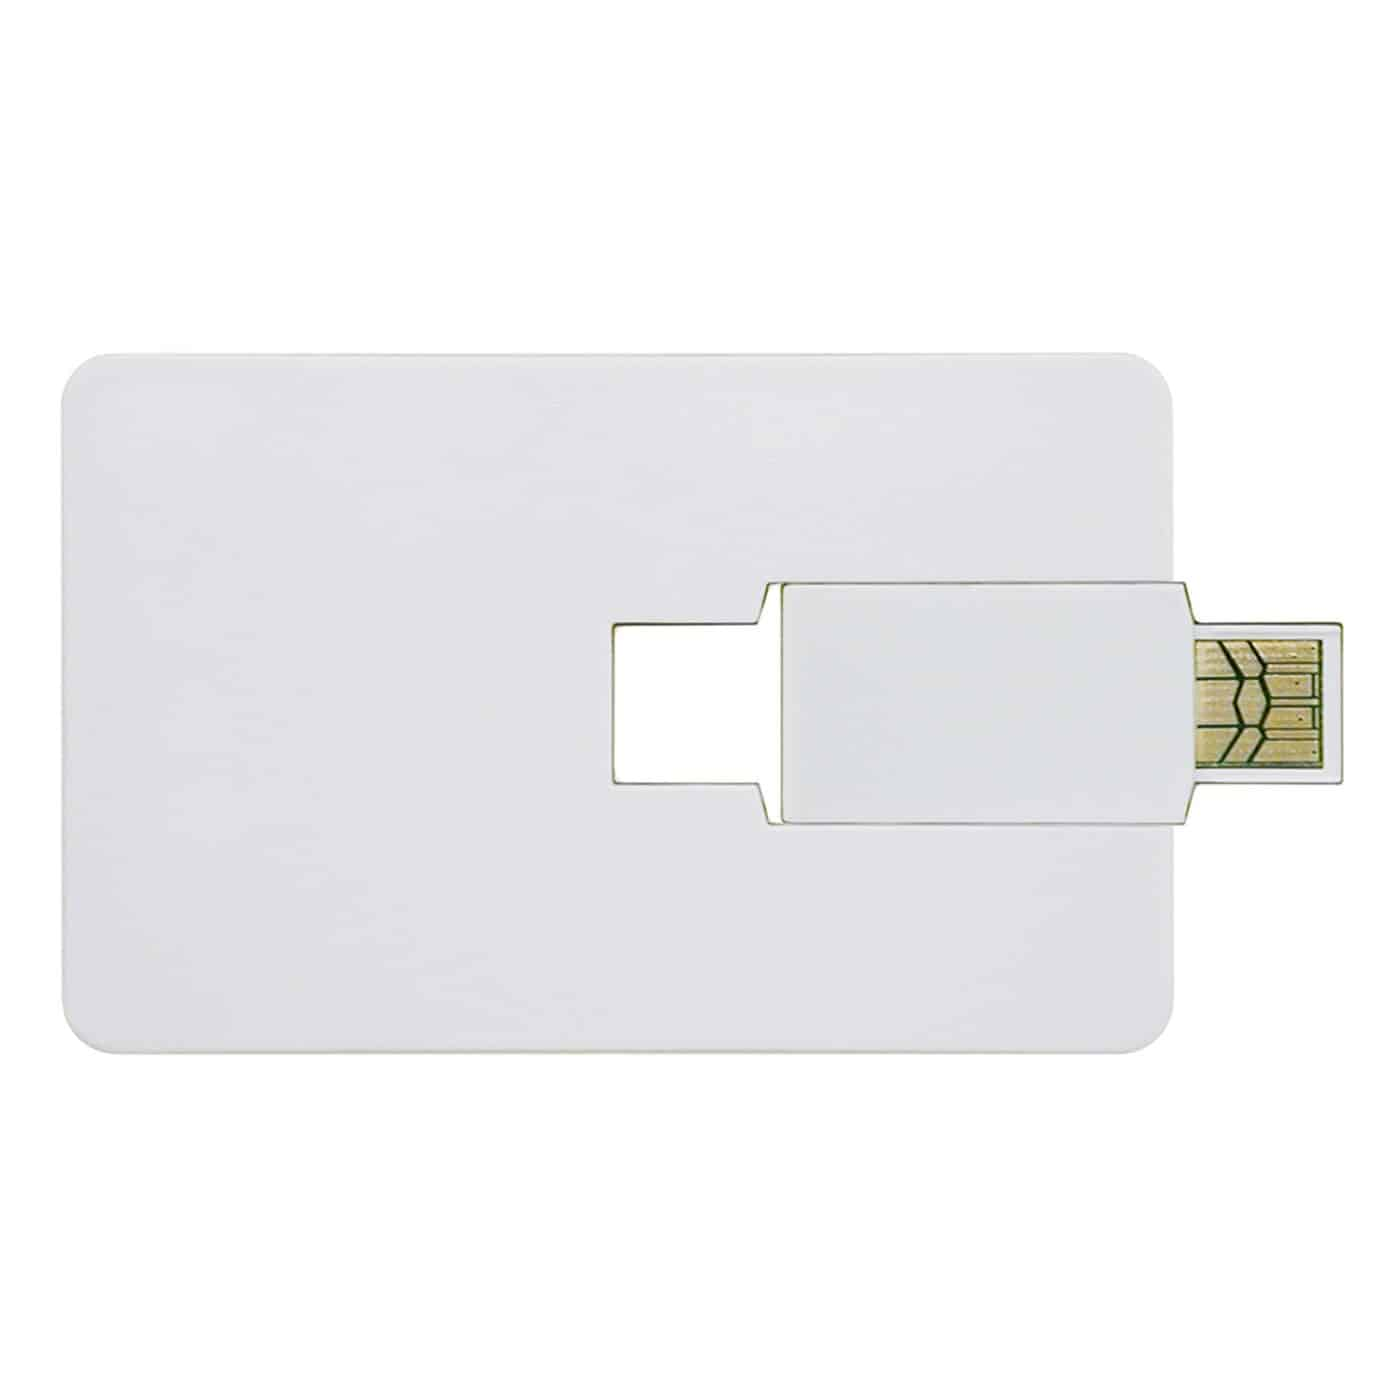 Credit Card USB Flash Drive - 8GB